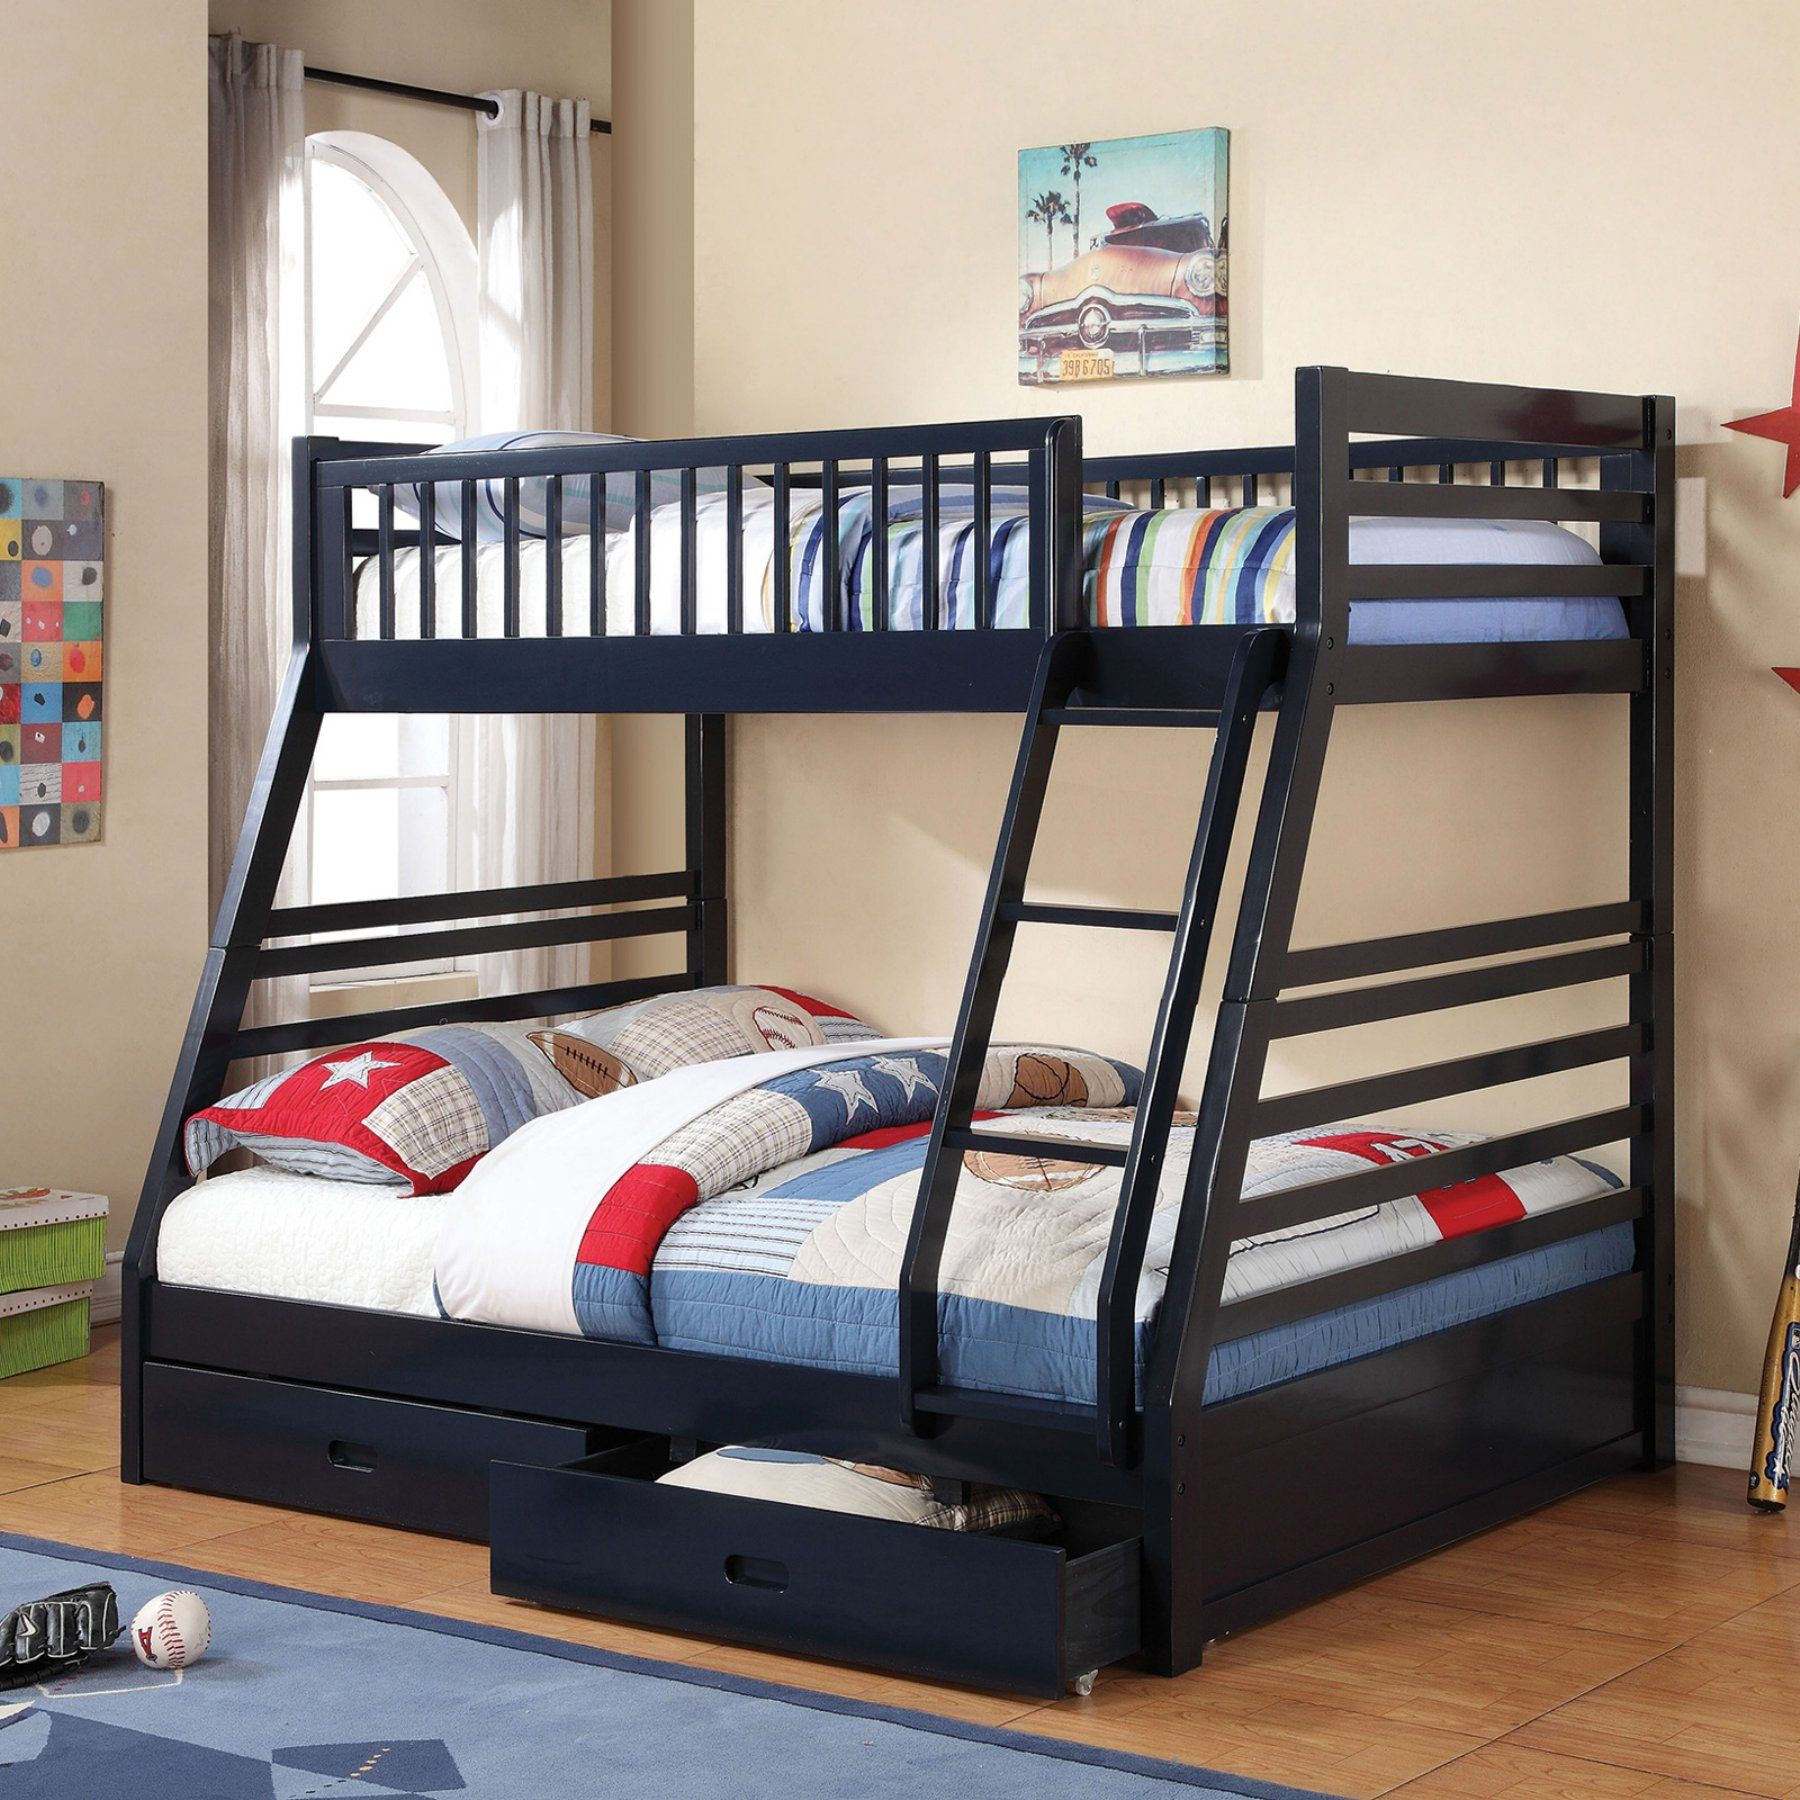 Twin loft bed dimensions  Coaster Furniture Twin over Full Bunk Bed with  Drawers and